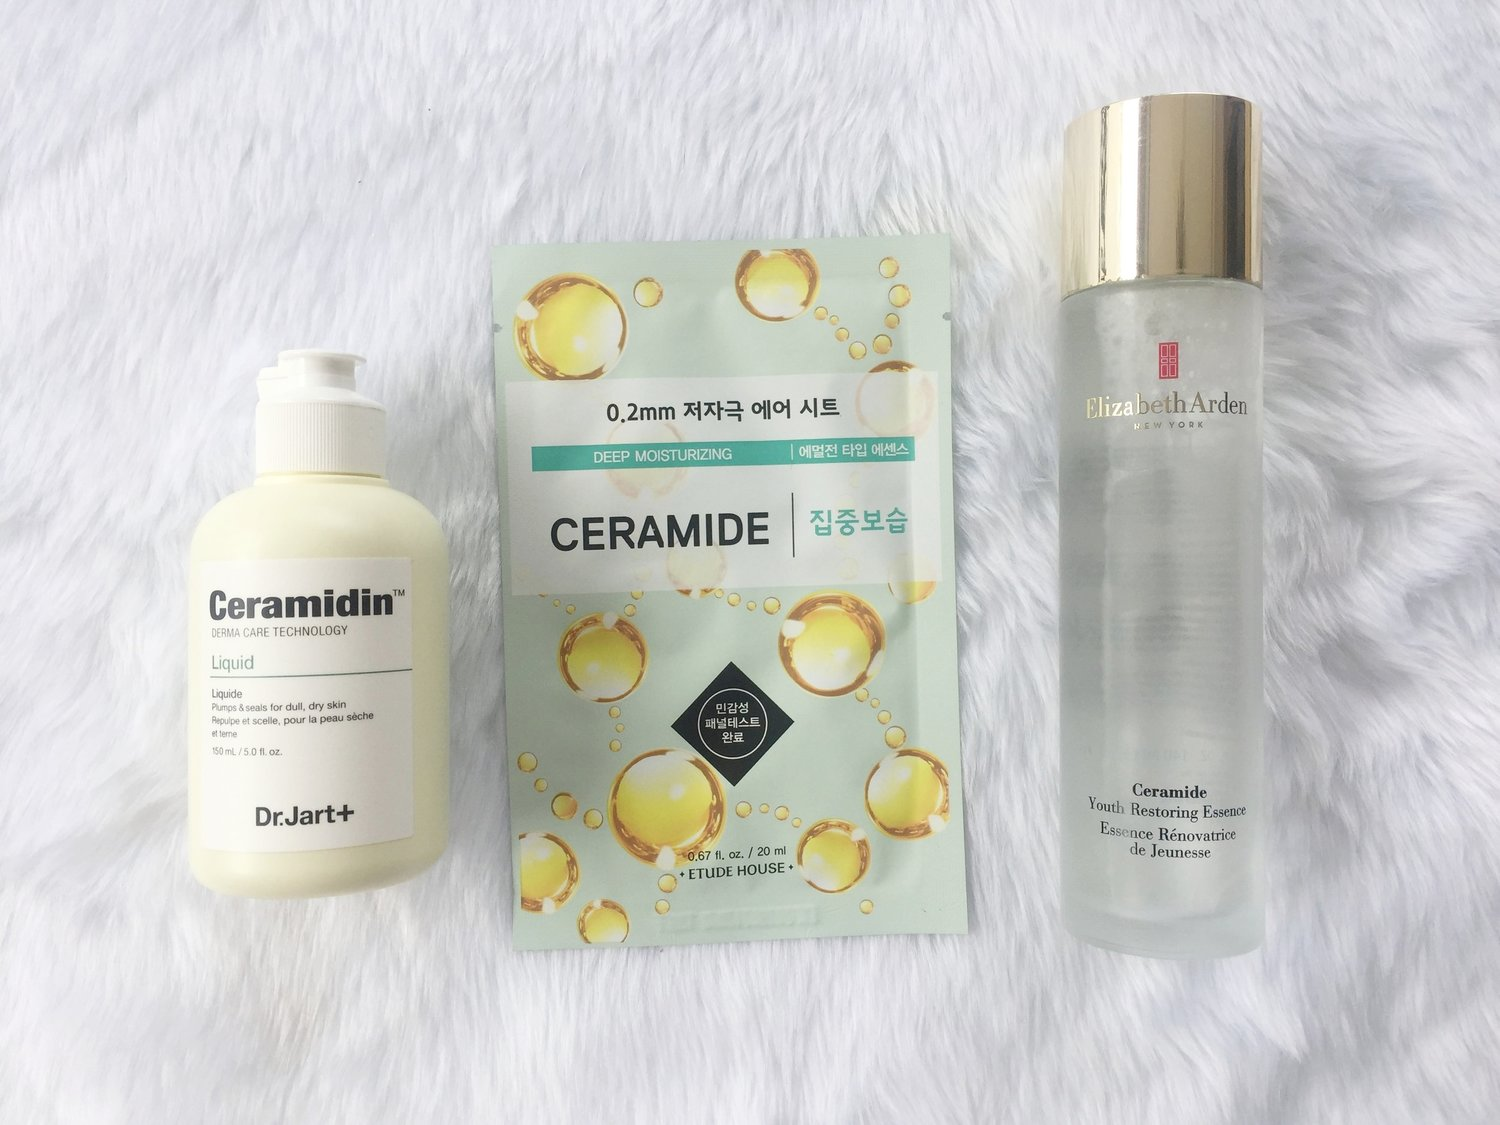 This is how using ceramides in my routine improved my skin